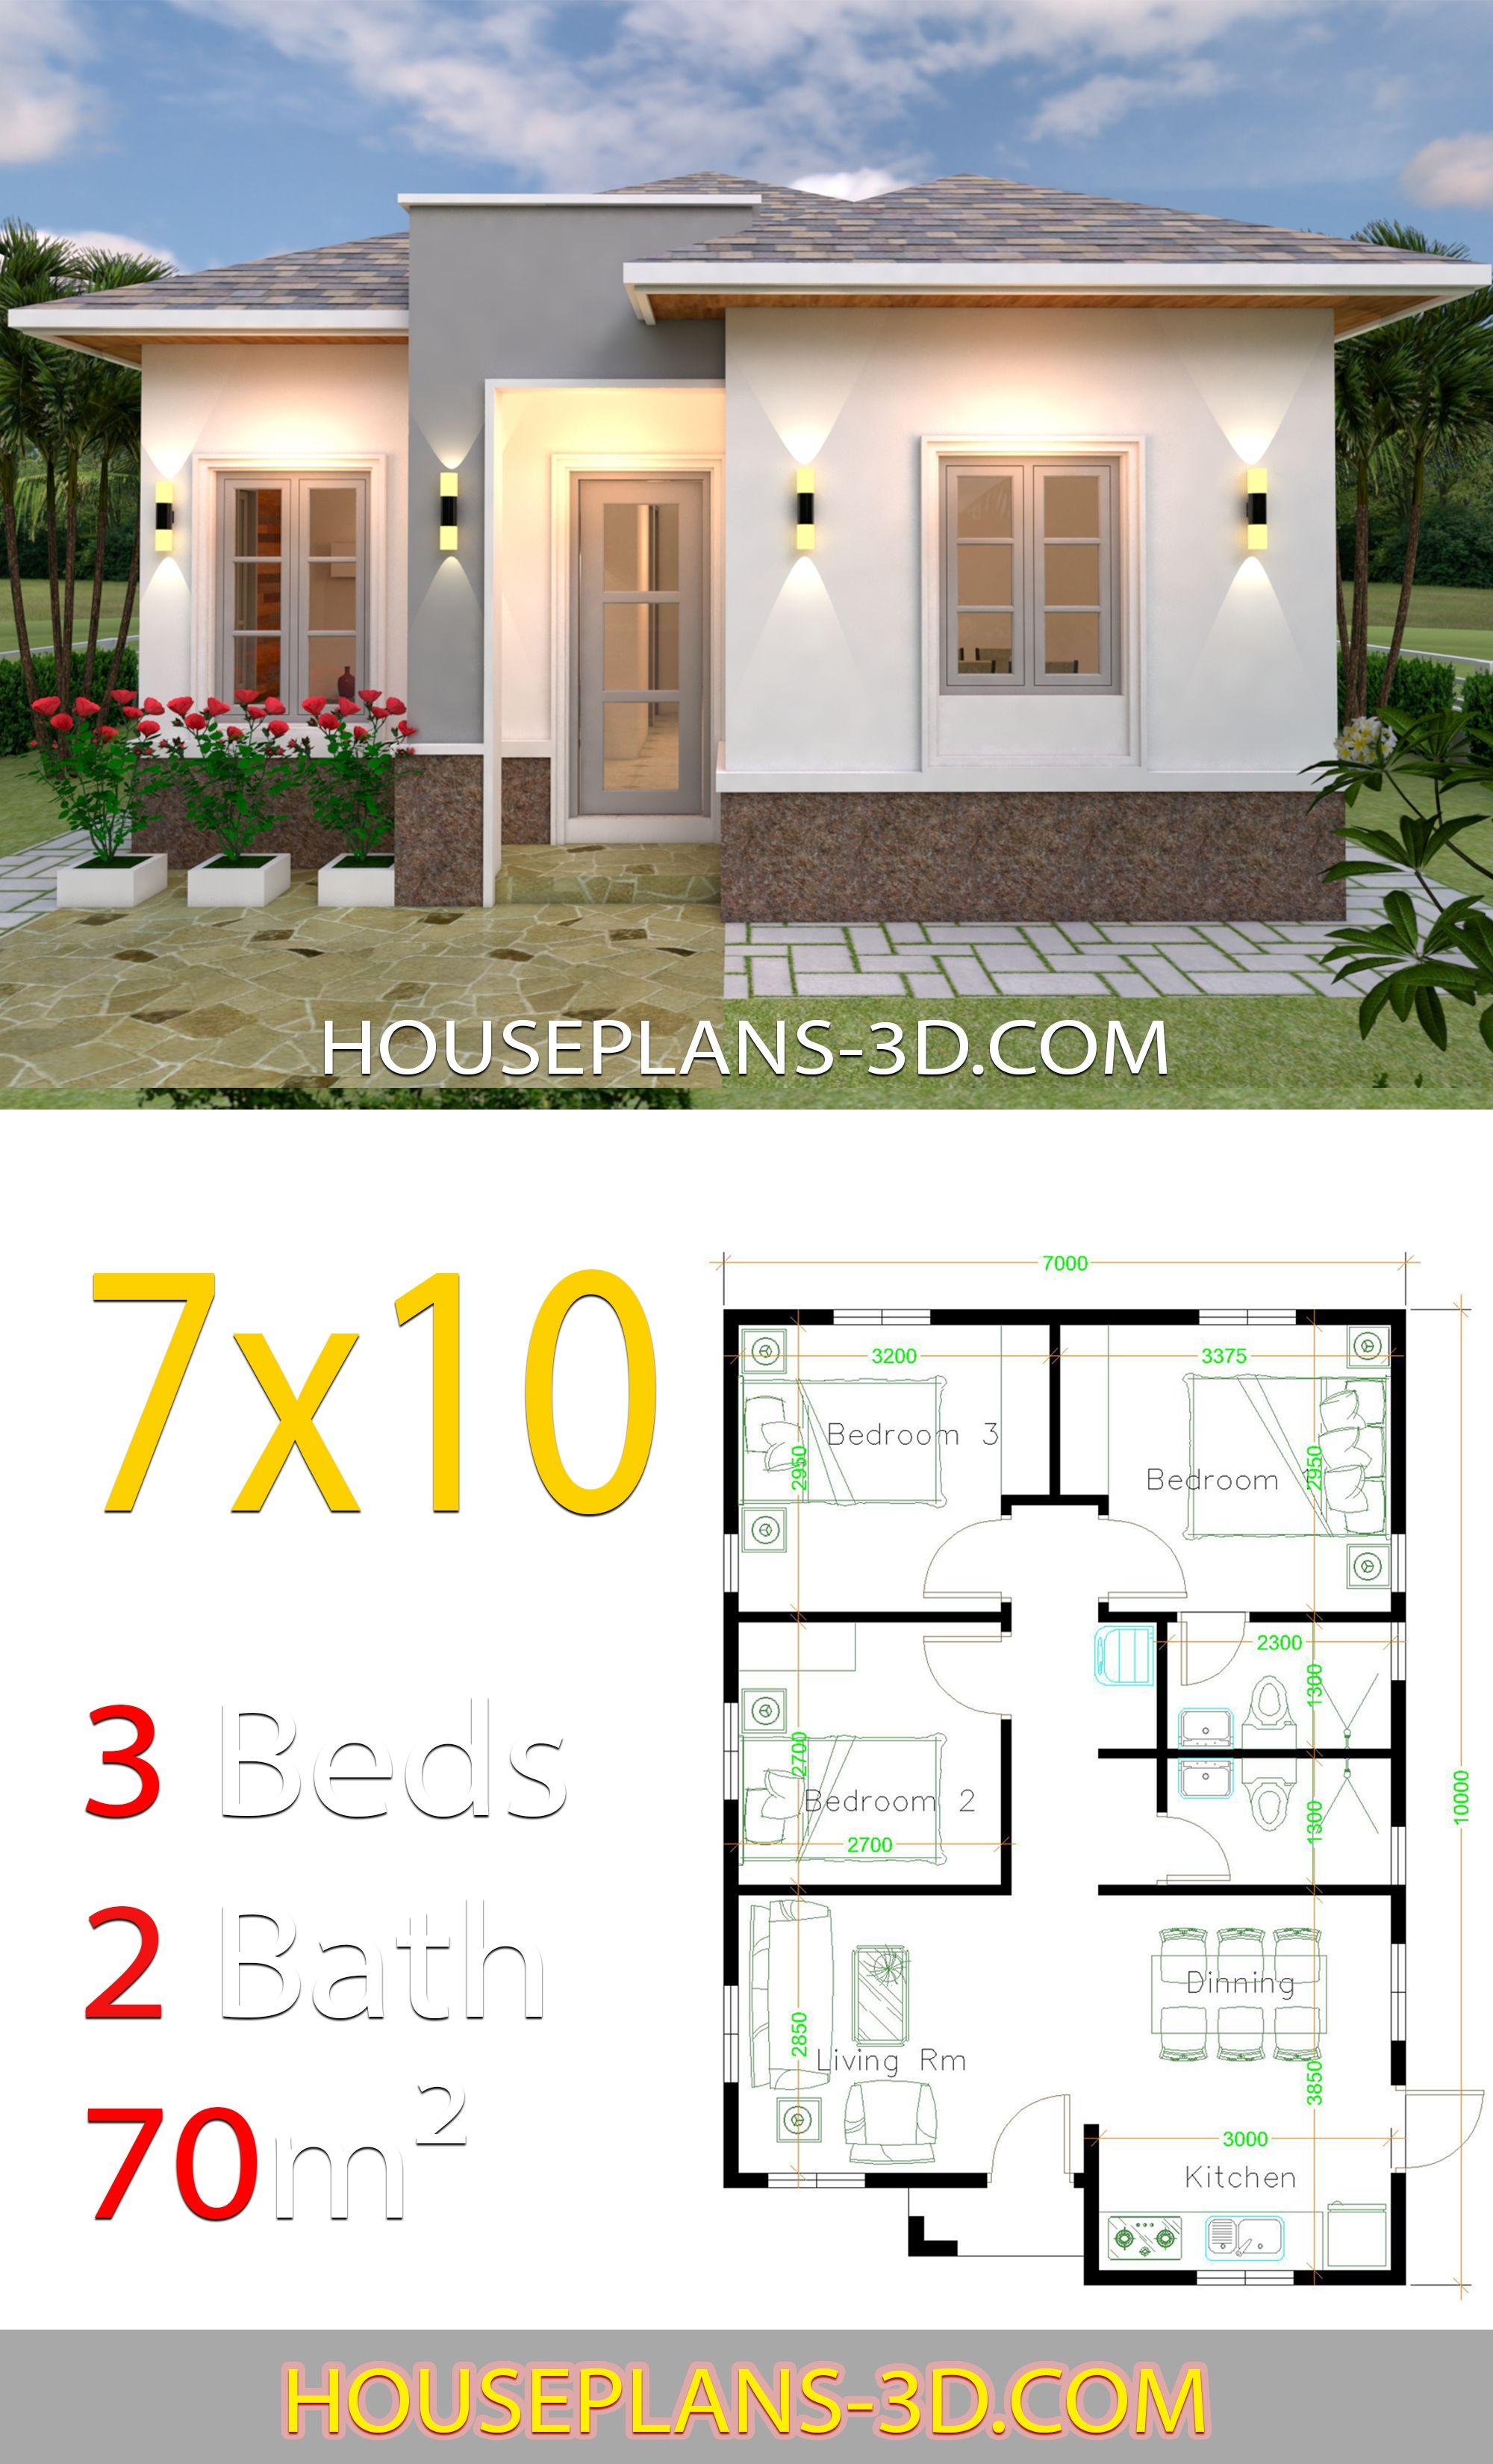 House Plans 7x10 With 3 Bedrooms House Plans 3d In 2020 House Plans Flat Roof House Small House Design Plans